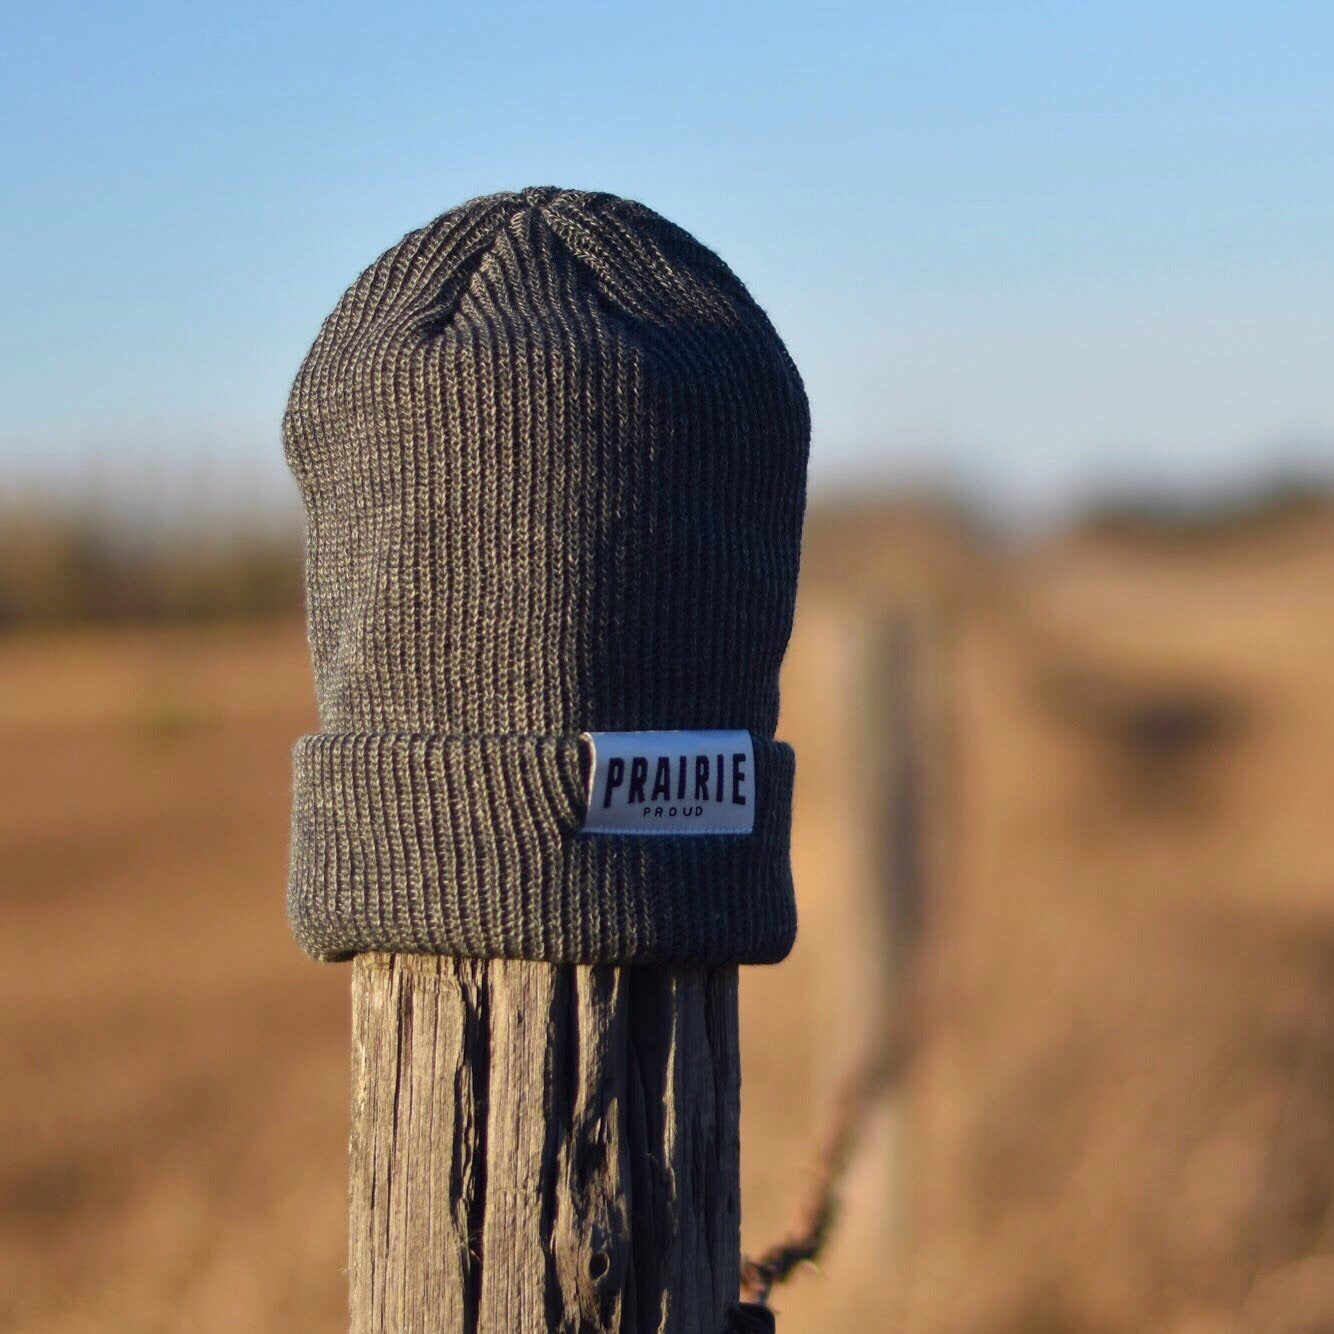 91dd0ddd564 Kids - Prairie Slouch   Beanie - Heather Grey - Prairie Proud